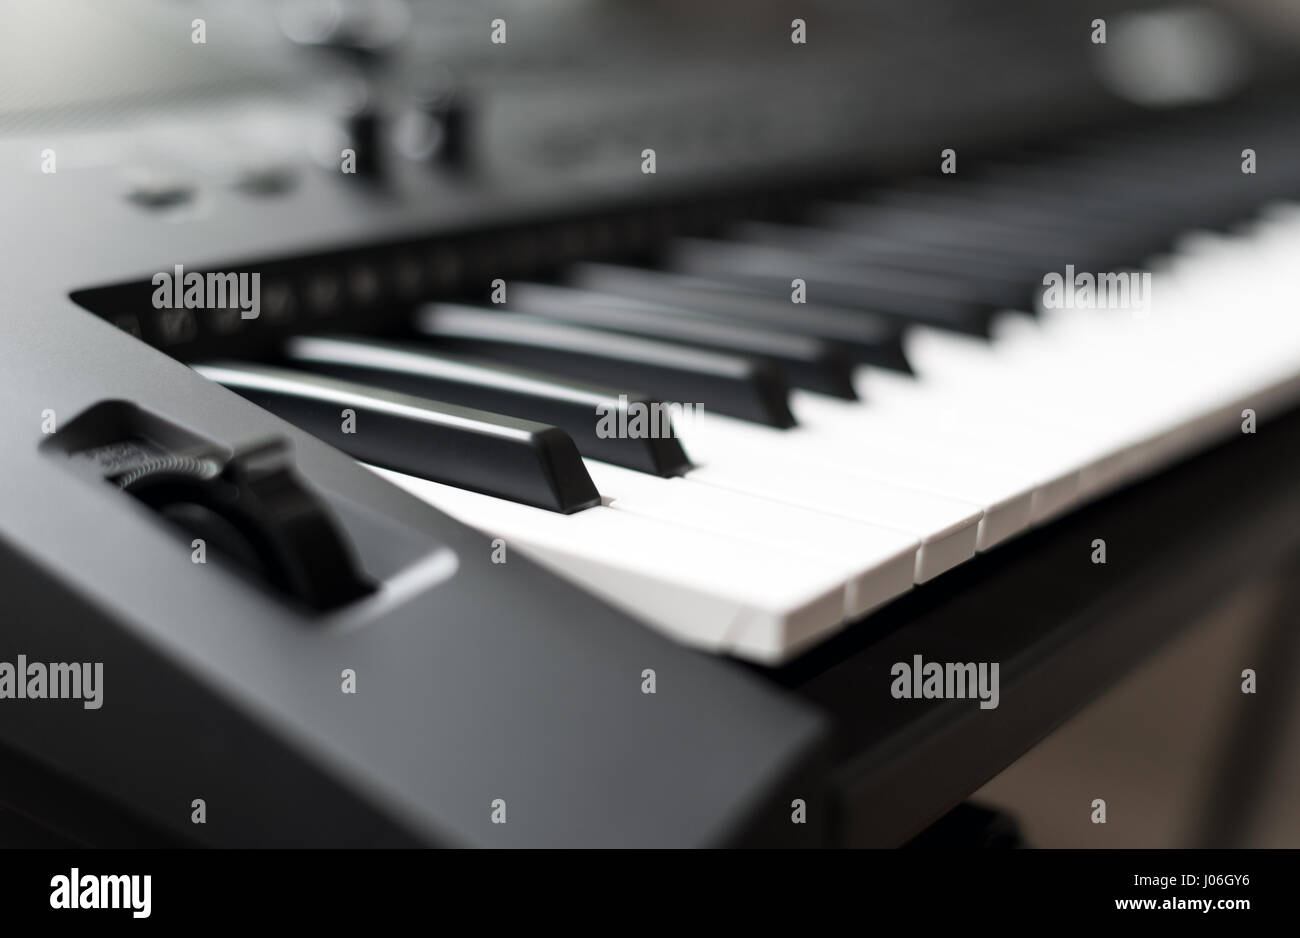 Professional midi keyboard synthesizer with knobs and controllers. - Stock Image